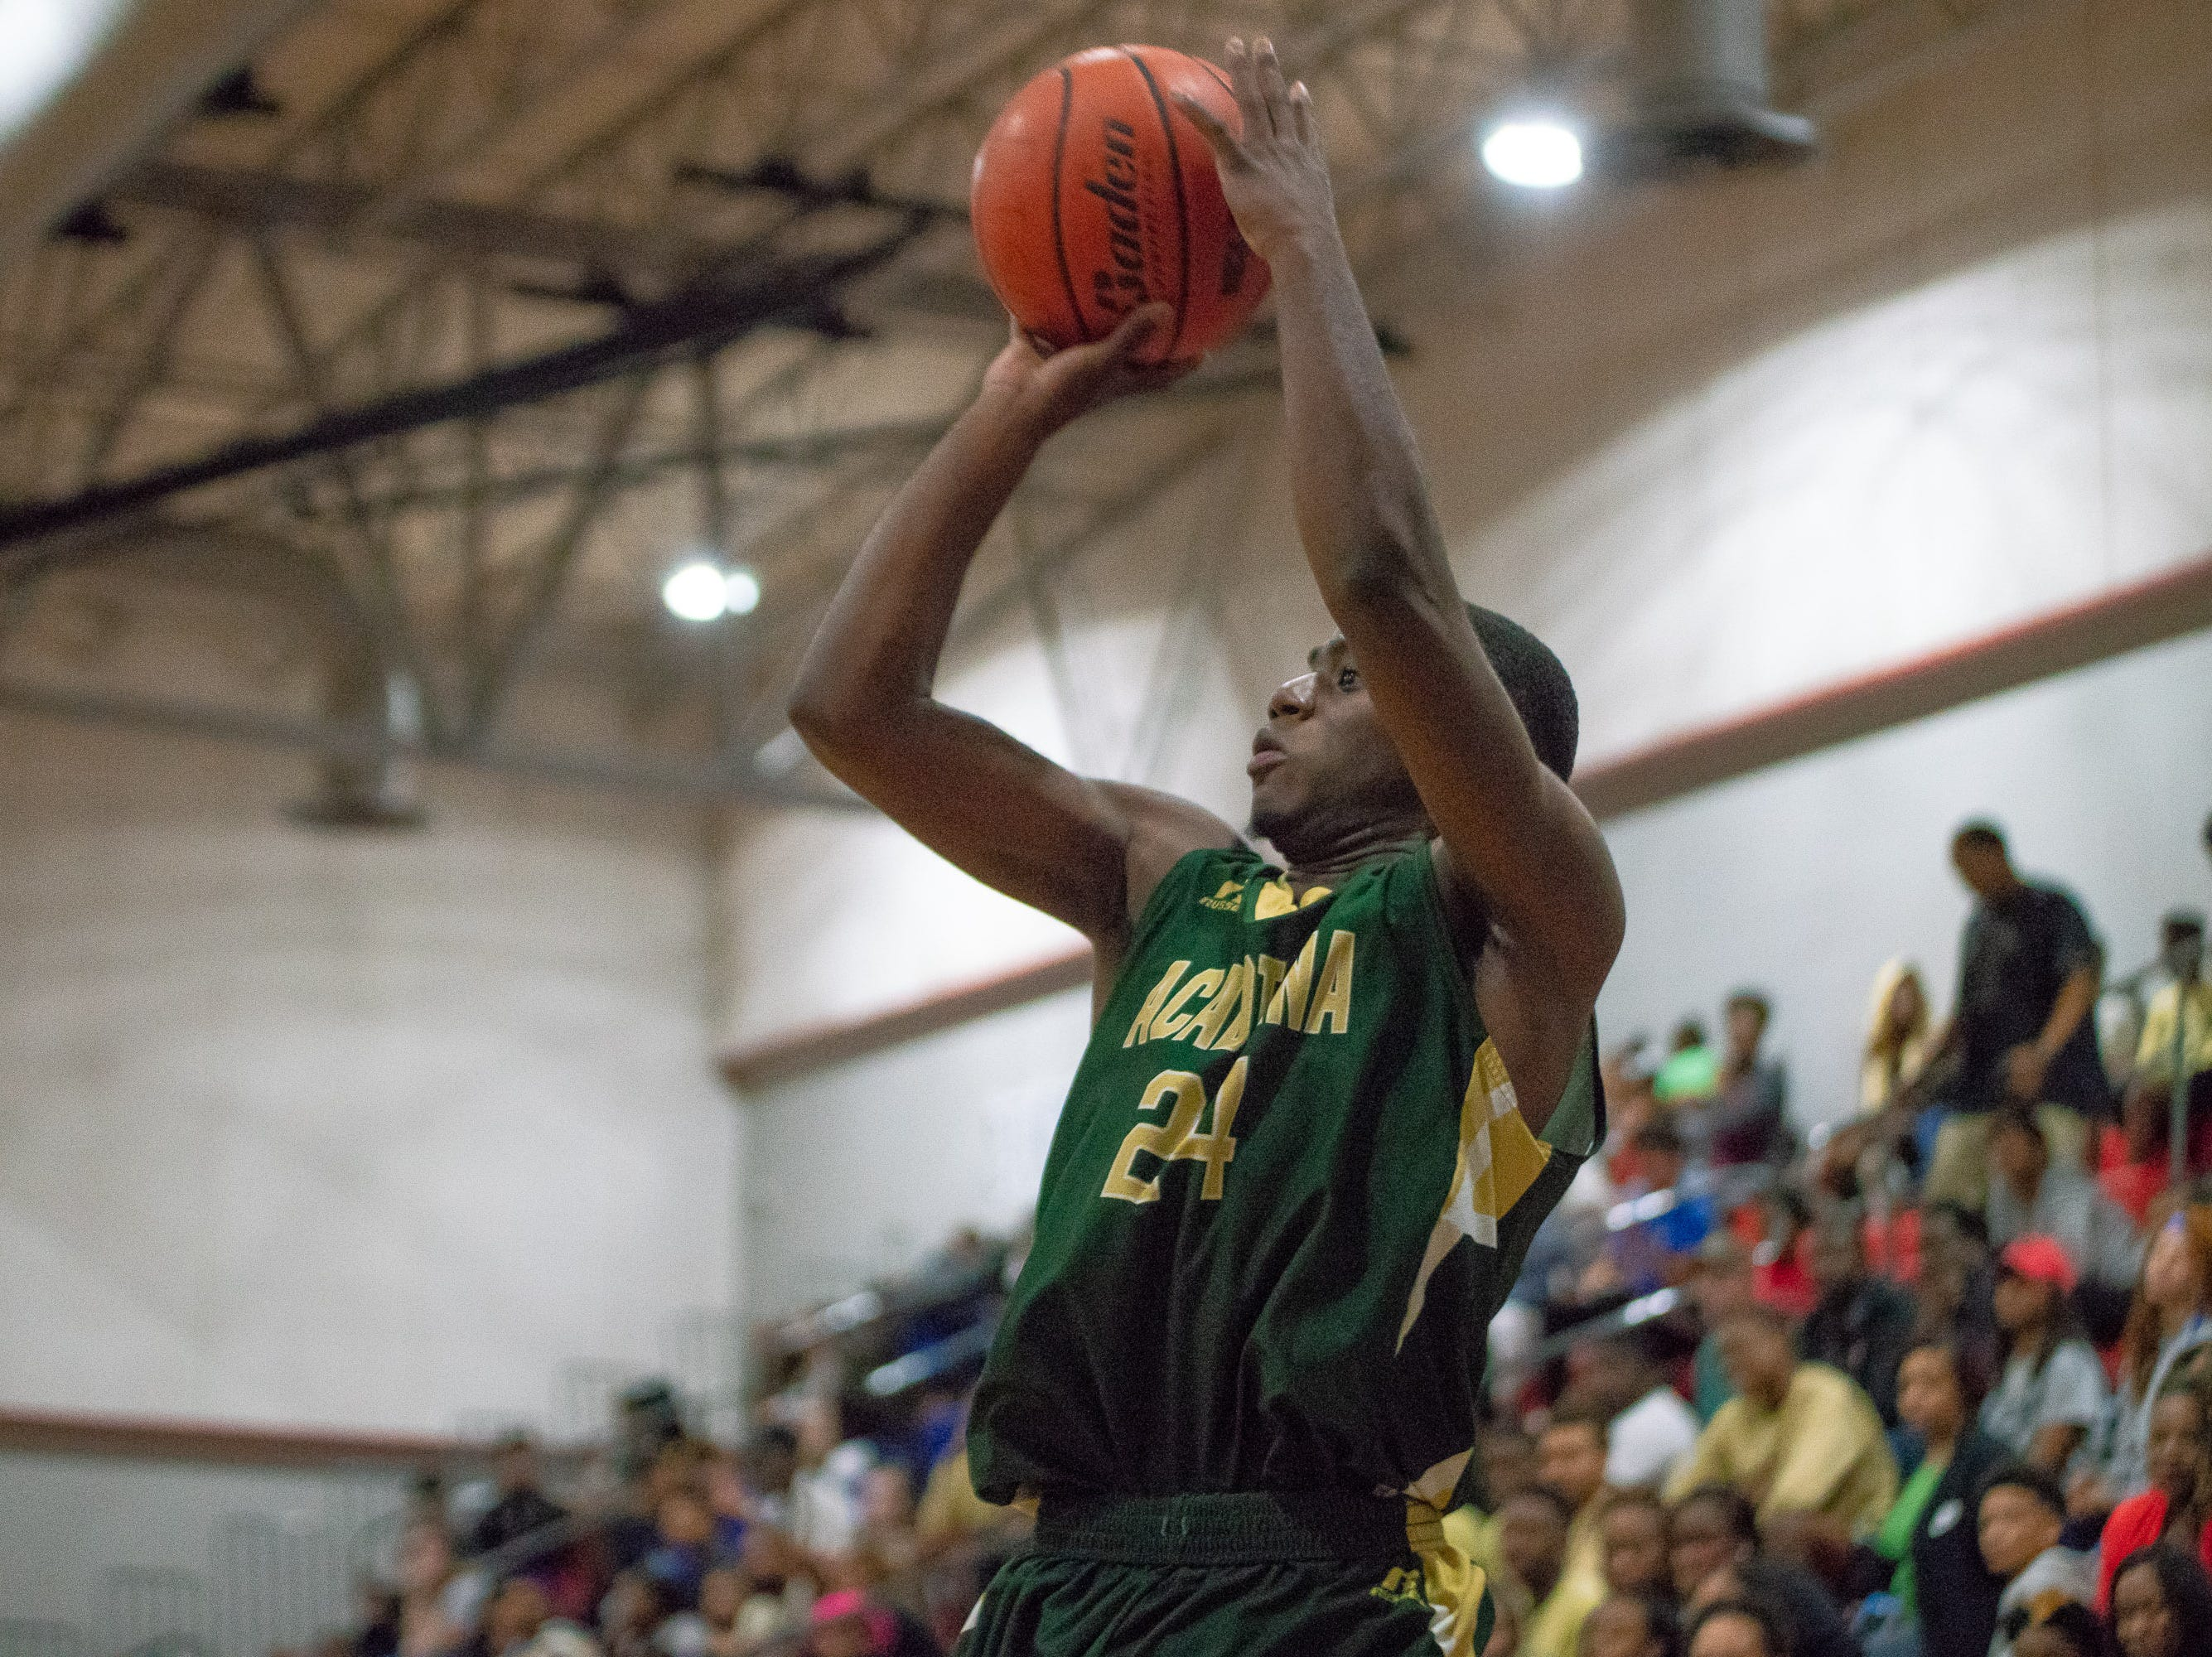 Acadiana's Phillip Thibodeaux shoots to score as the Acadiana high school Rams take on the David Thibodaux Bulldogs on January 8, 2019.